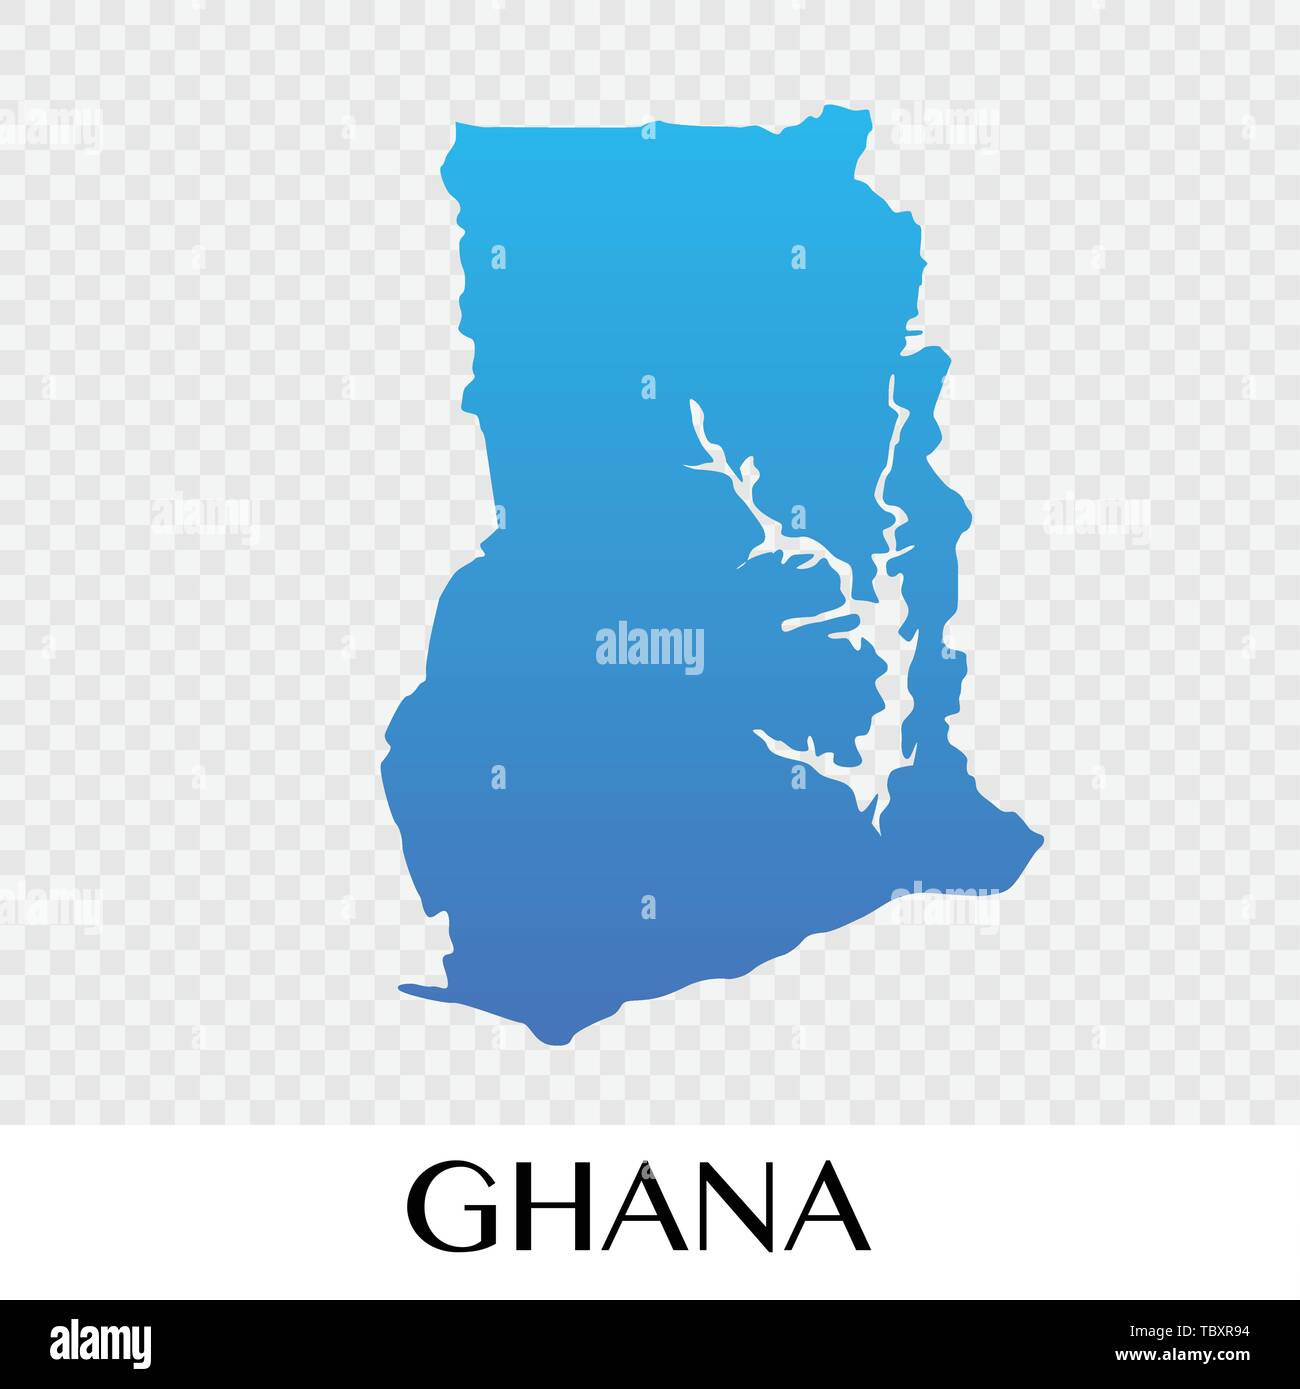 Ghana map in Africa  continent illustration design - Stock Vector